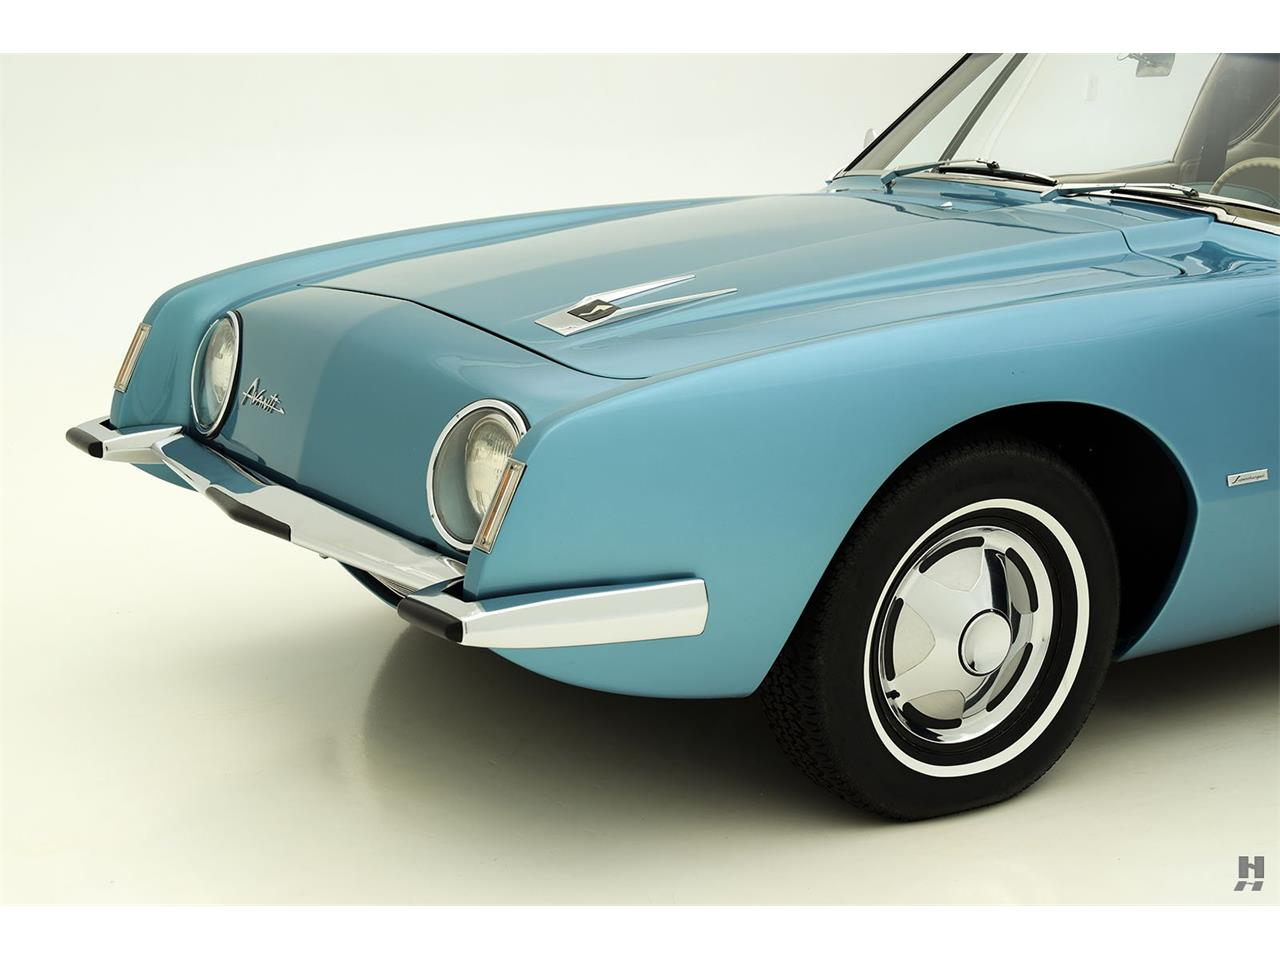 Large Picture of Classic '63 Studebaker Avanti - $77,500.00 Offered by Hyman Ltd. Classic Cars - MGHN